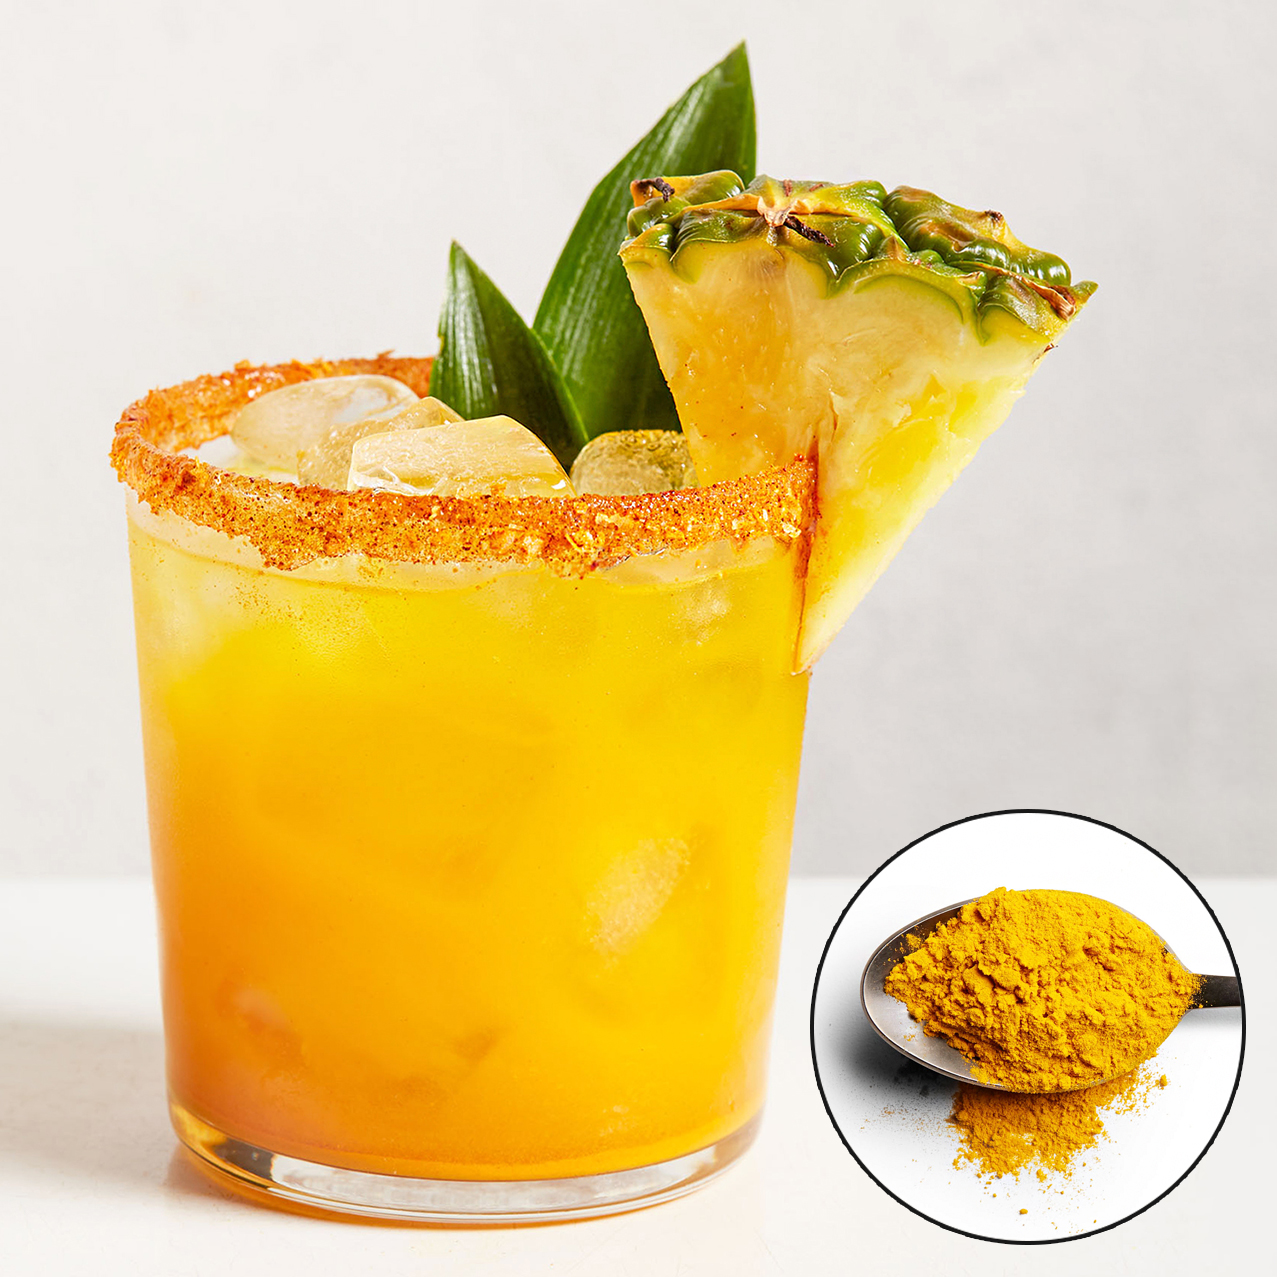 pineapple and turmeric margarita with spice inset